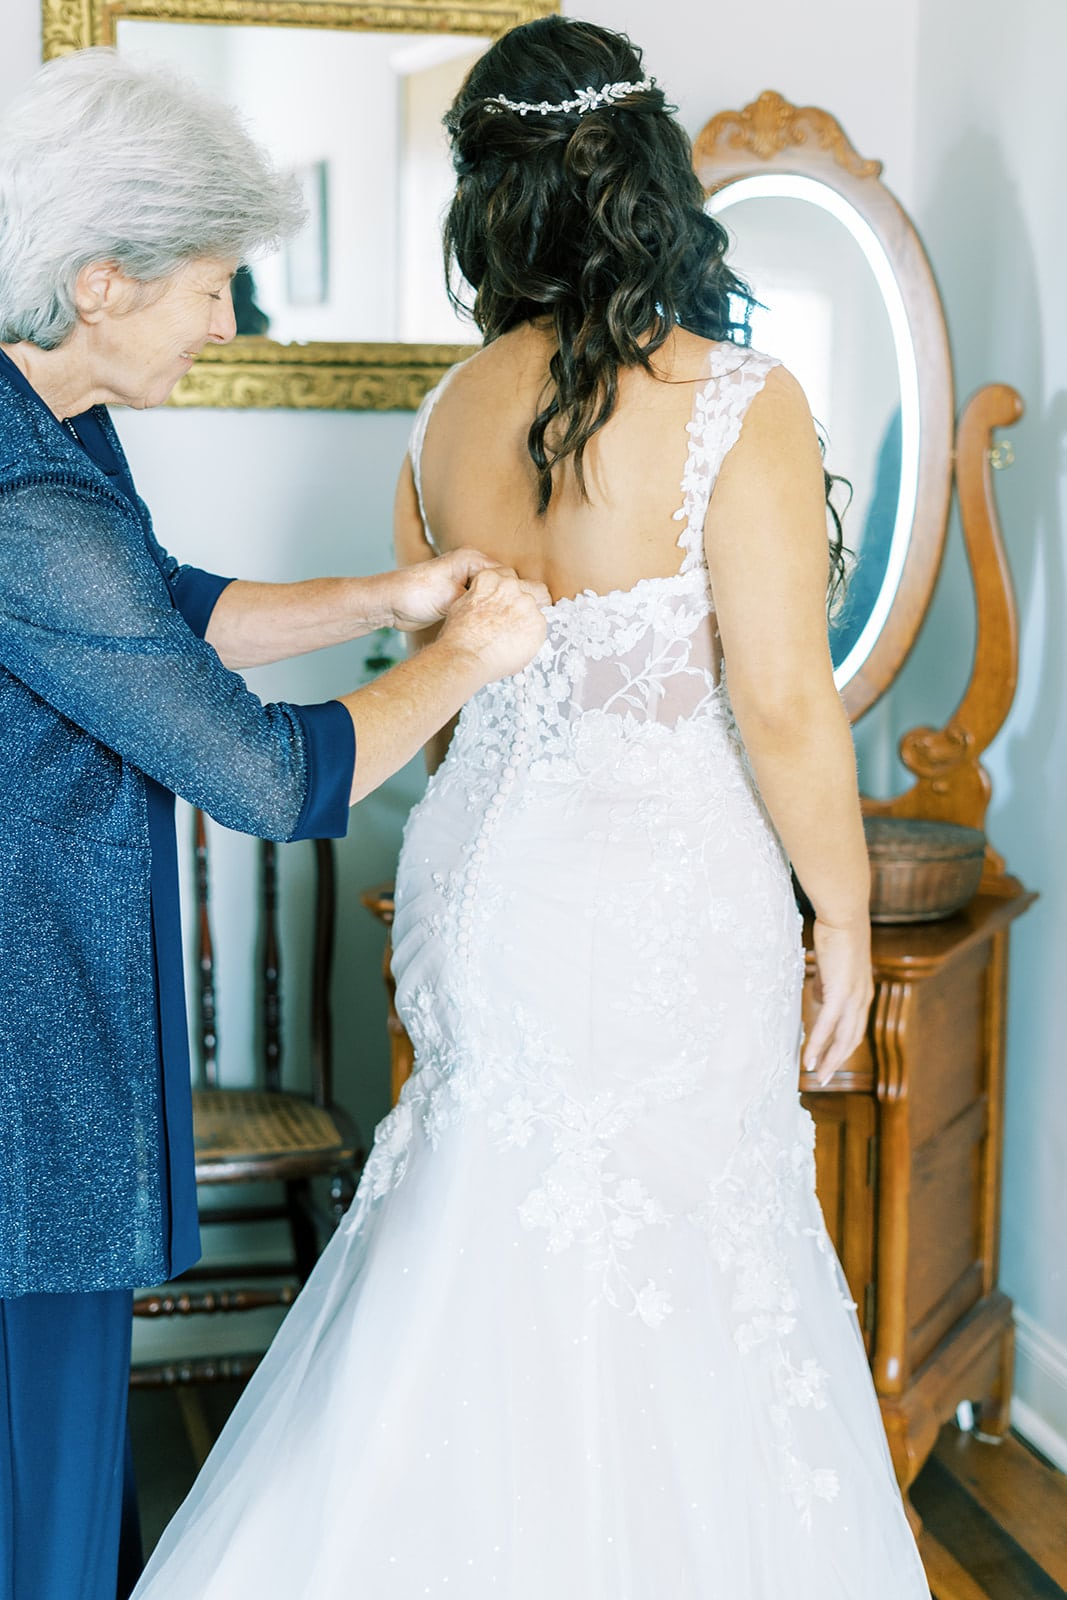 Lace fit and flare wedding dress | Nashville Bride Guide